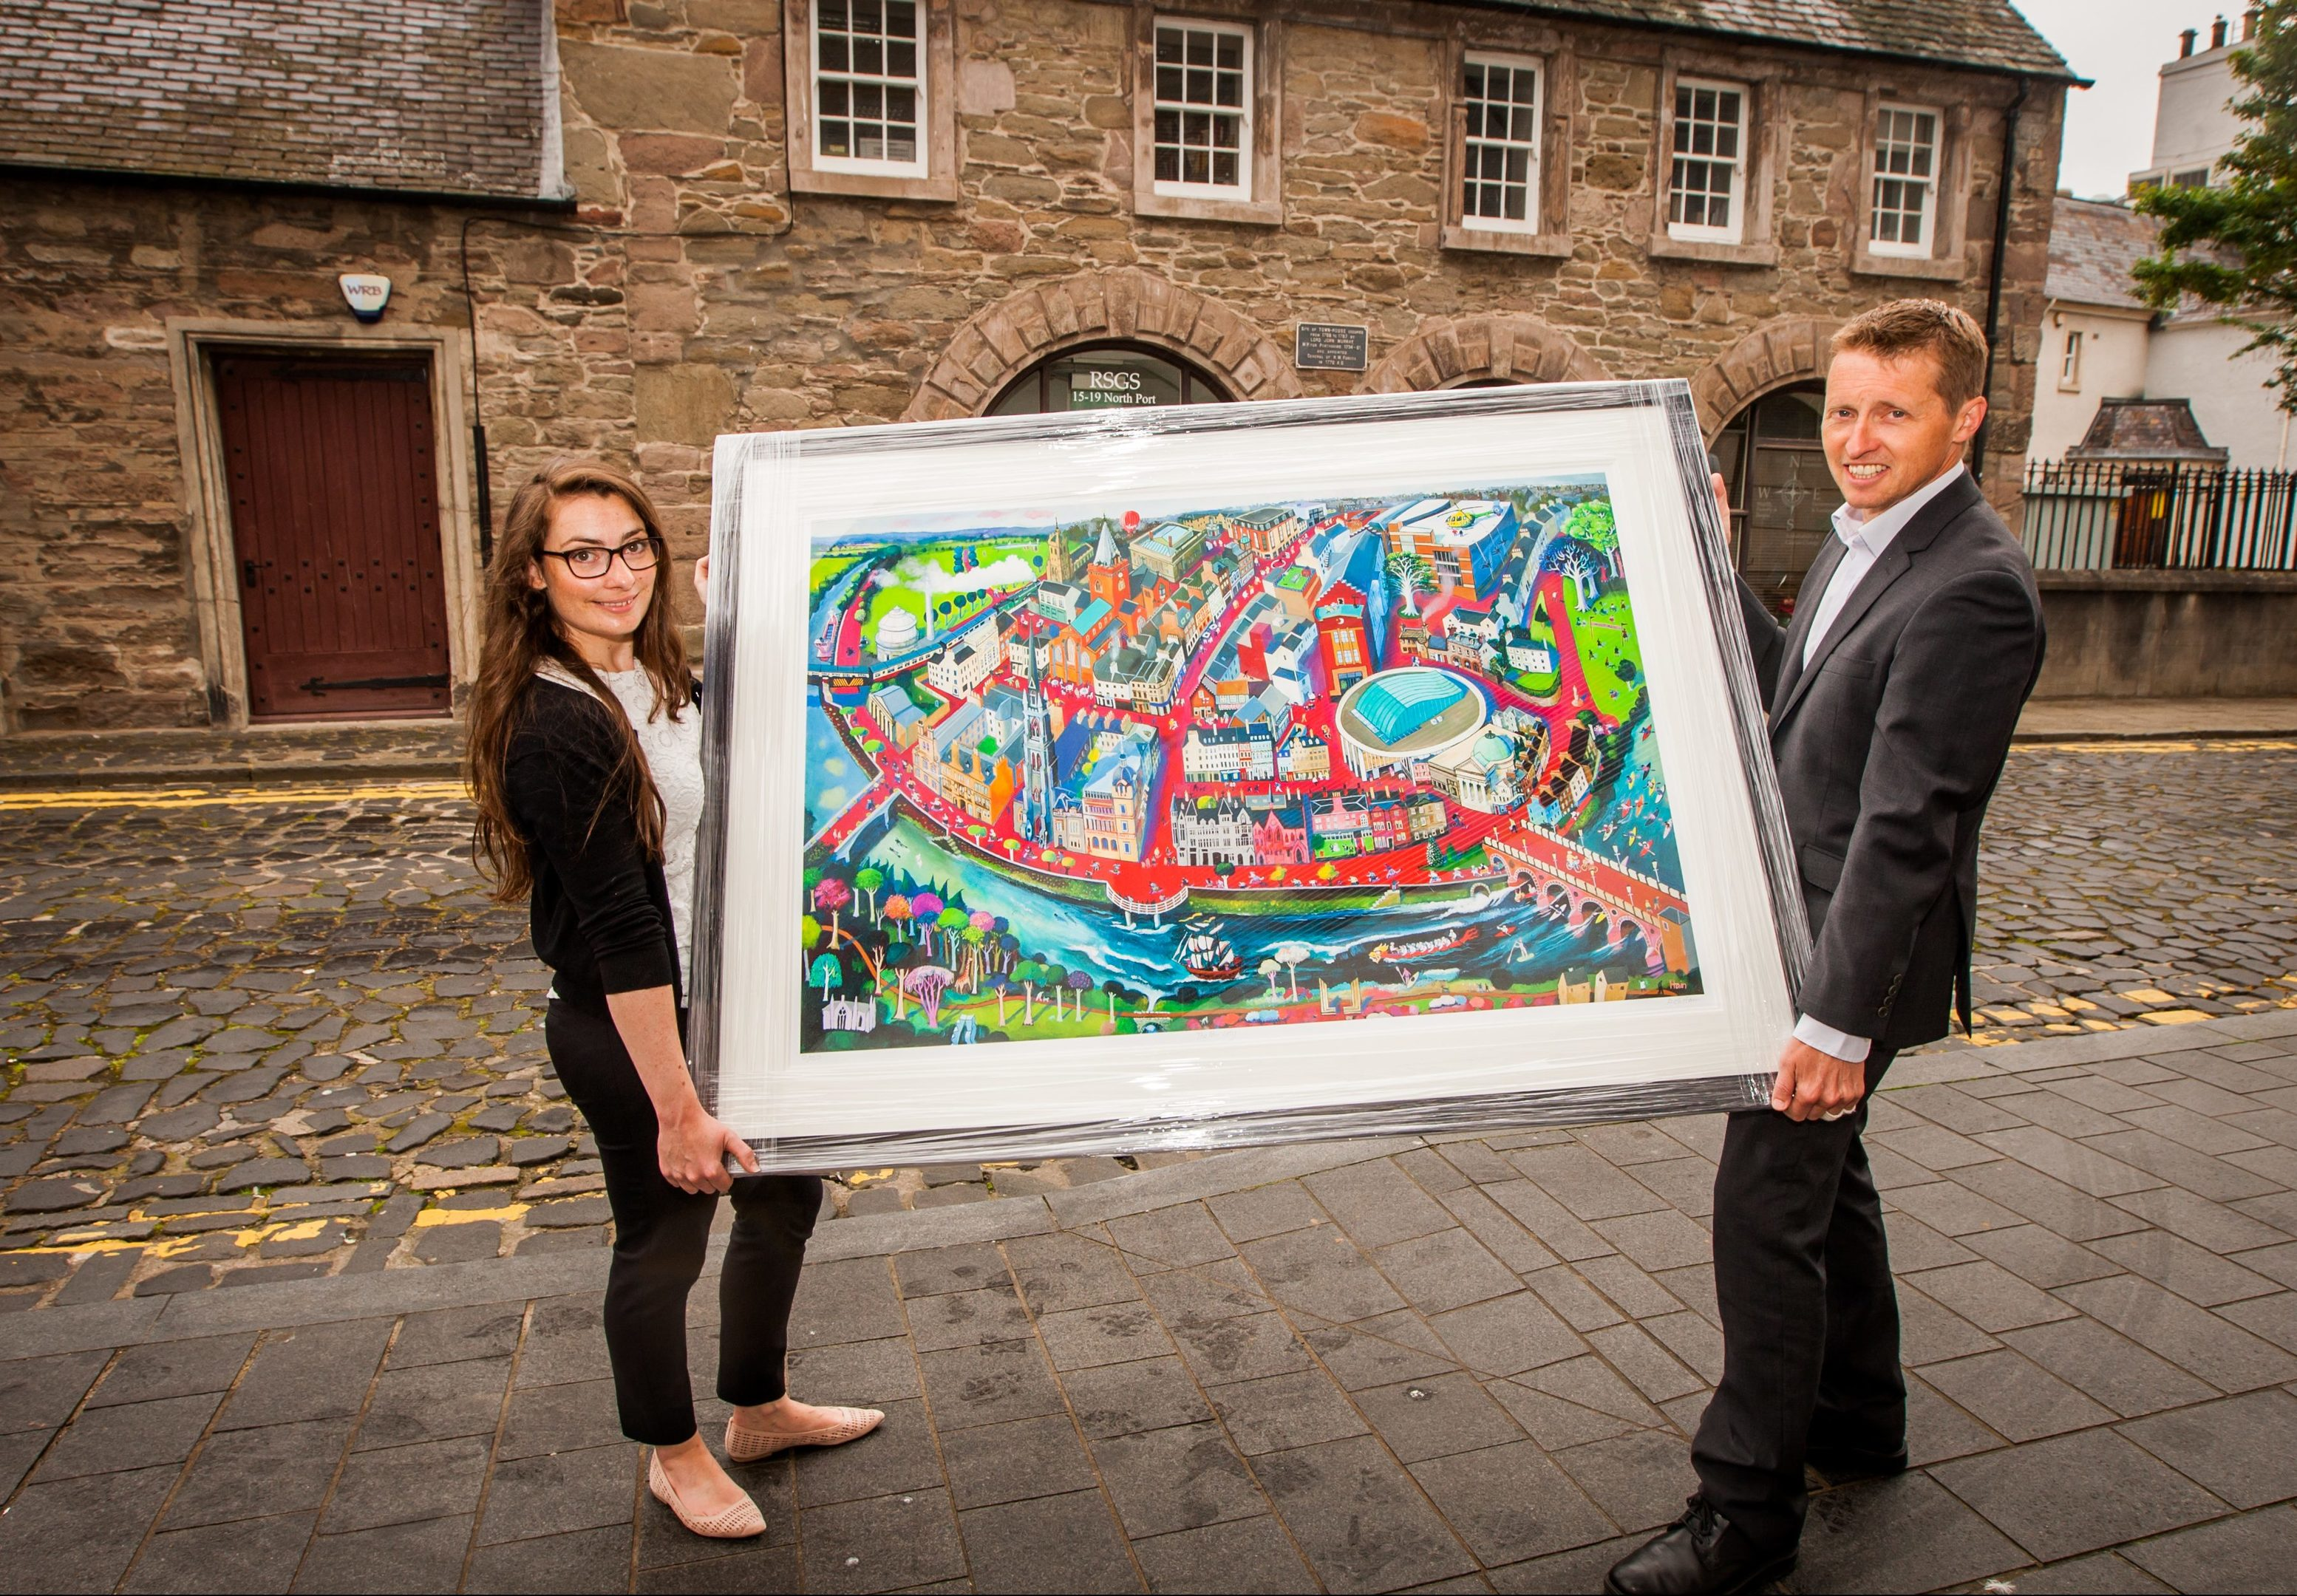 Gemma McDonald (RSGS communications officer) alongside chief executive, Mike Robinson and the painting 'Fair City' at the Royal Scottish Geographical Society, North Port, Perth.